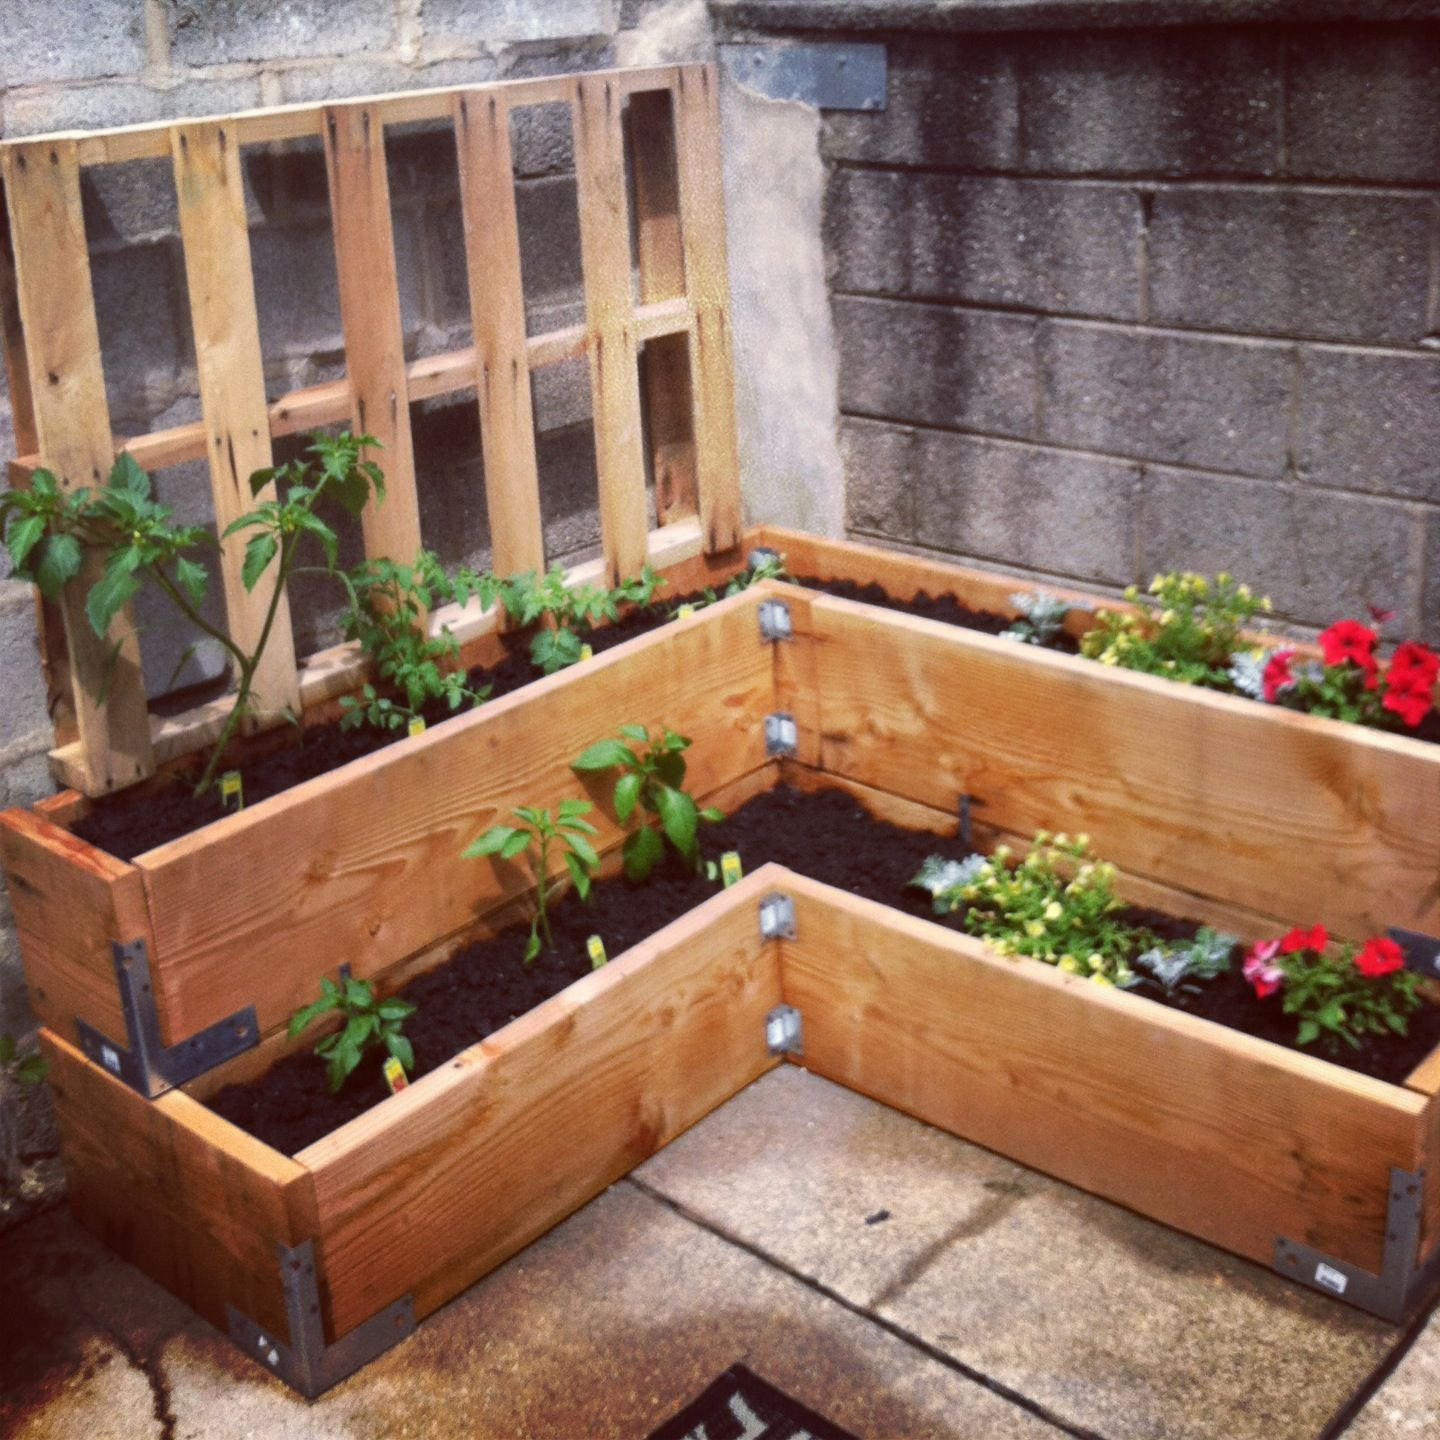 Urban Garden In The Making ::part 2:: So Simple With Stuff